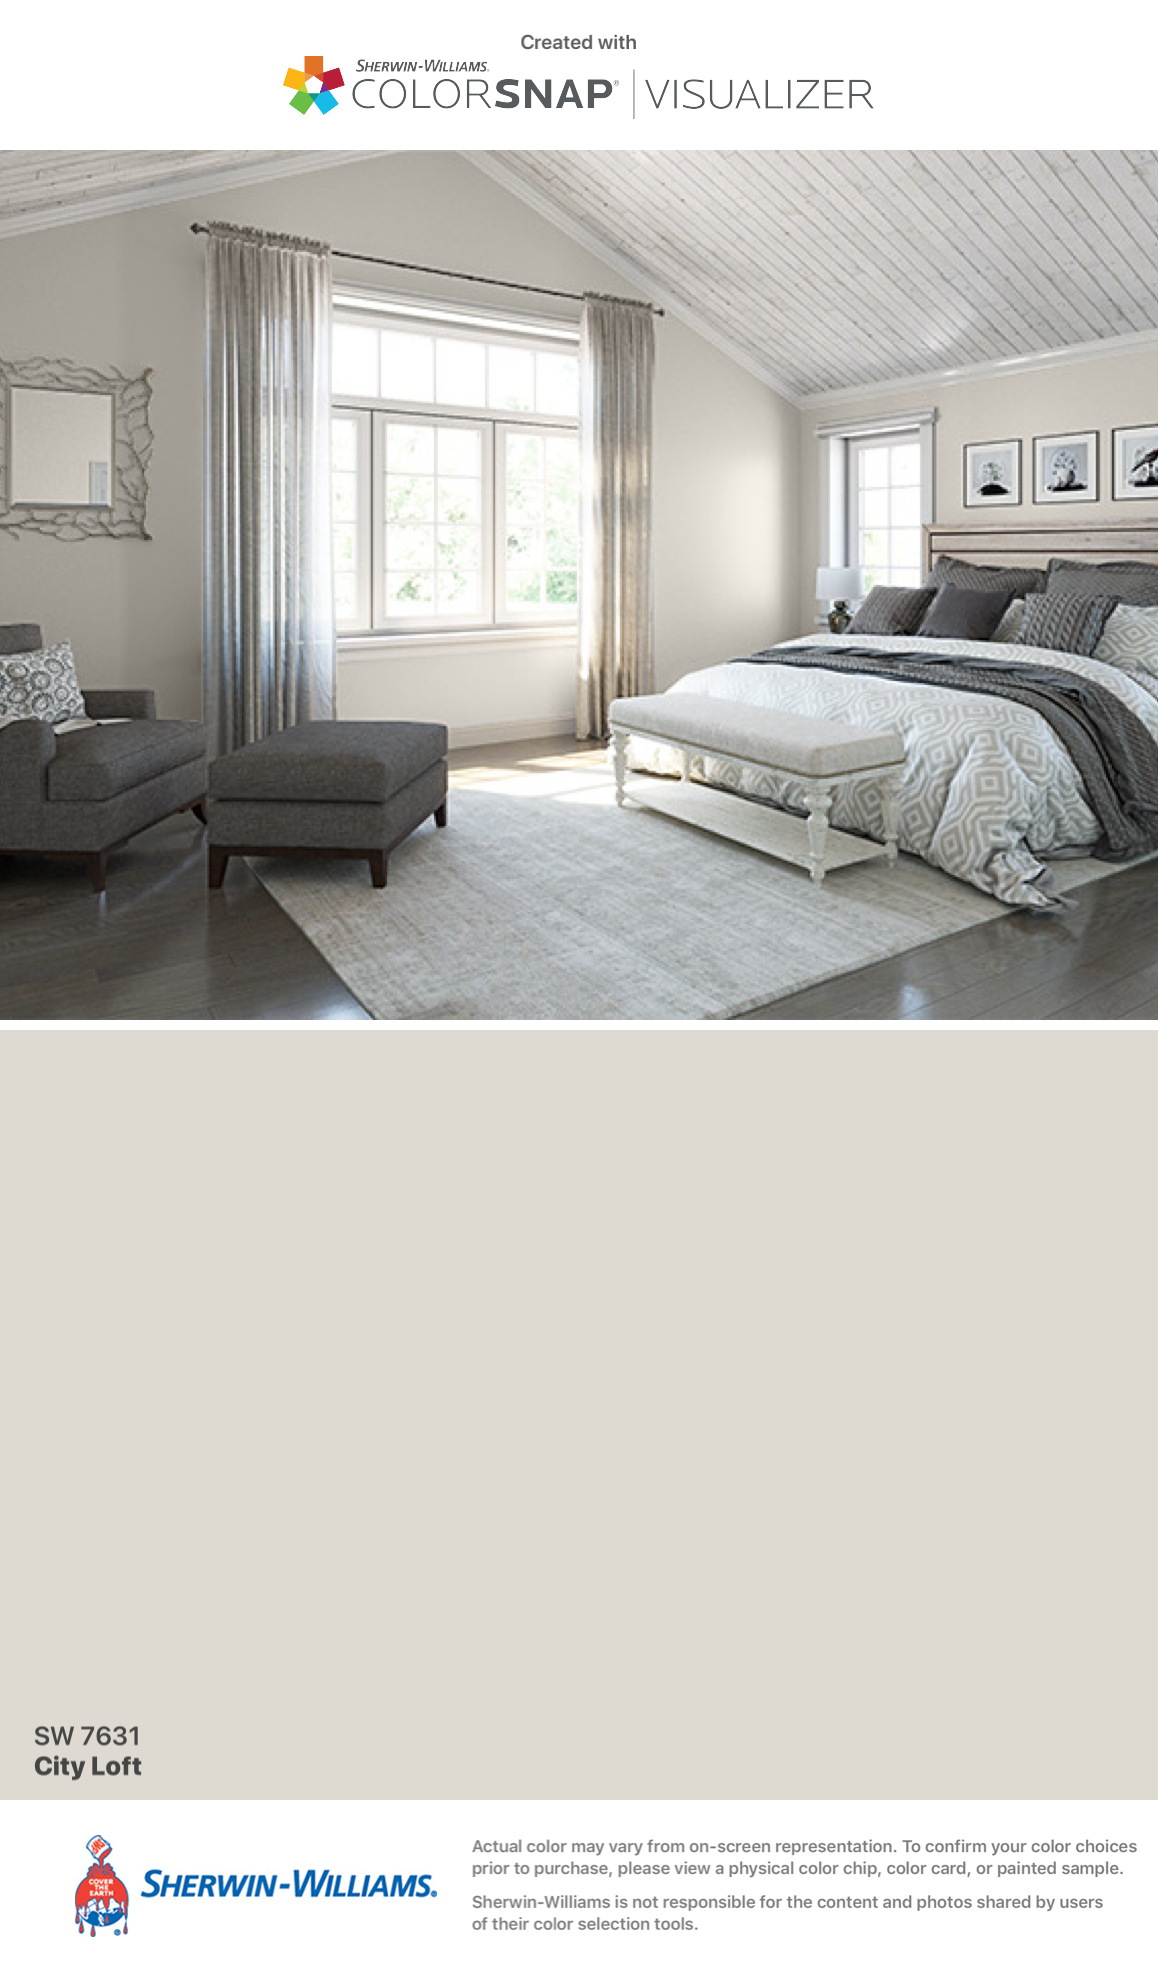 I found this color with ColorSnap Visualizer for iPhone by Sherwin-Williams: City Loft (SW 7631).